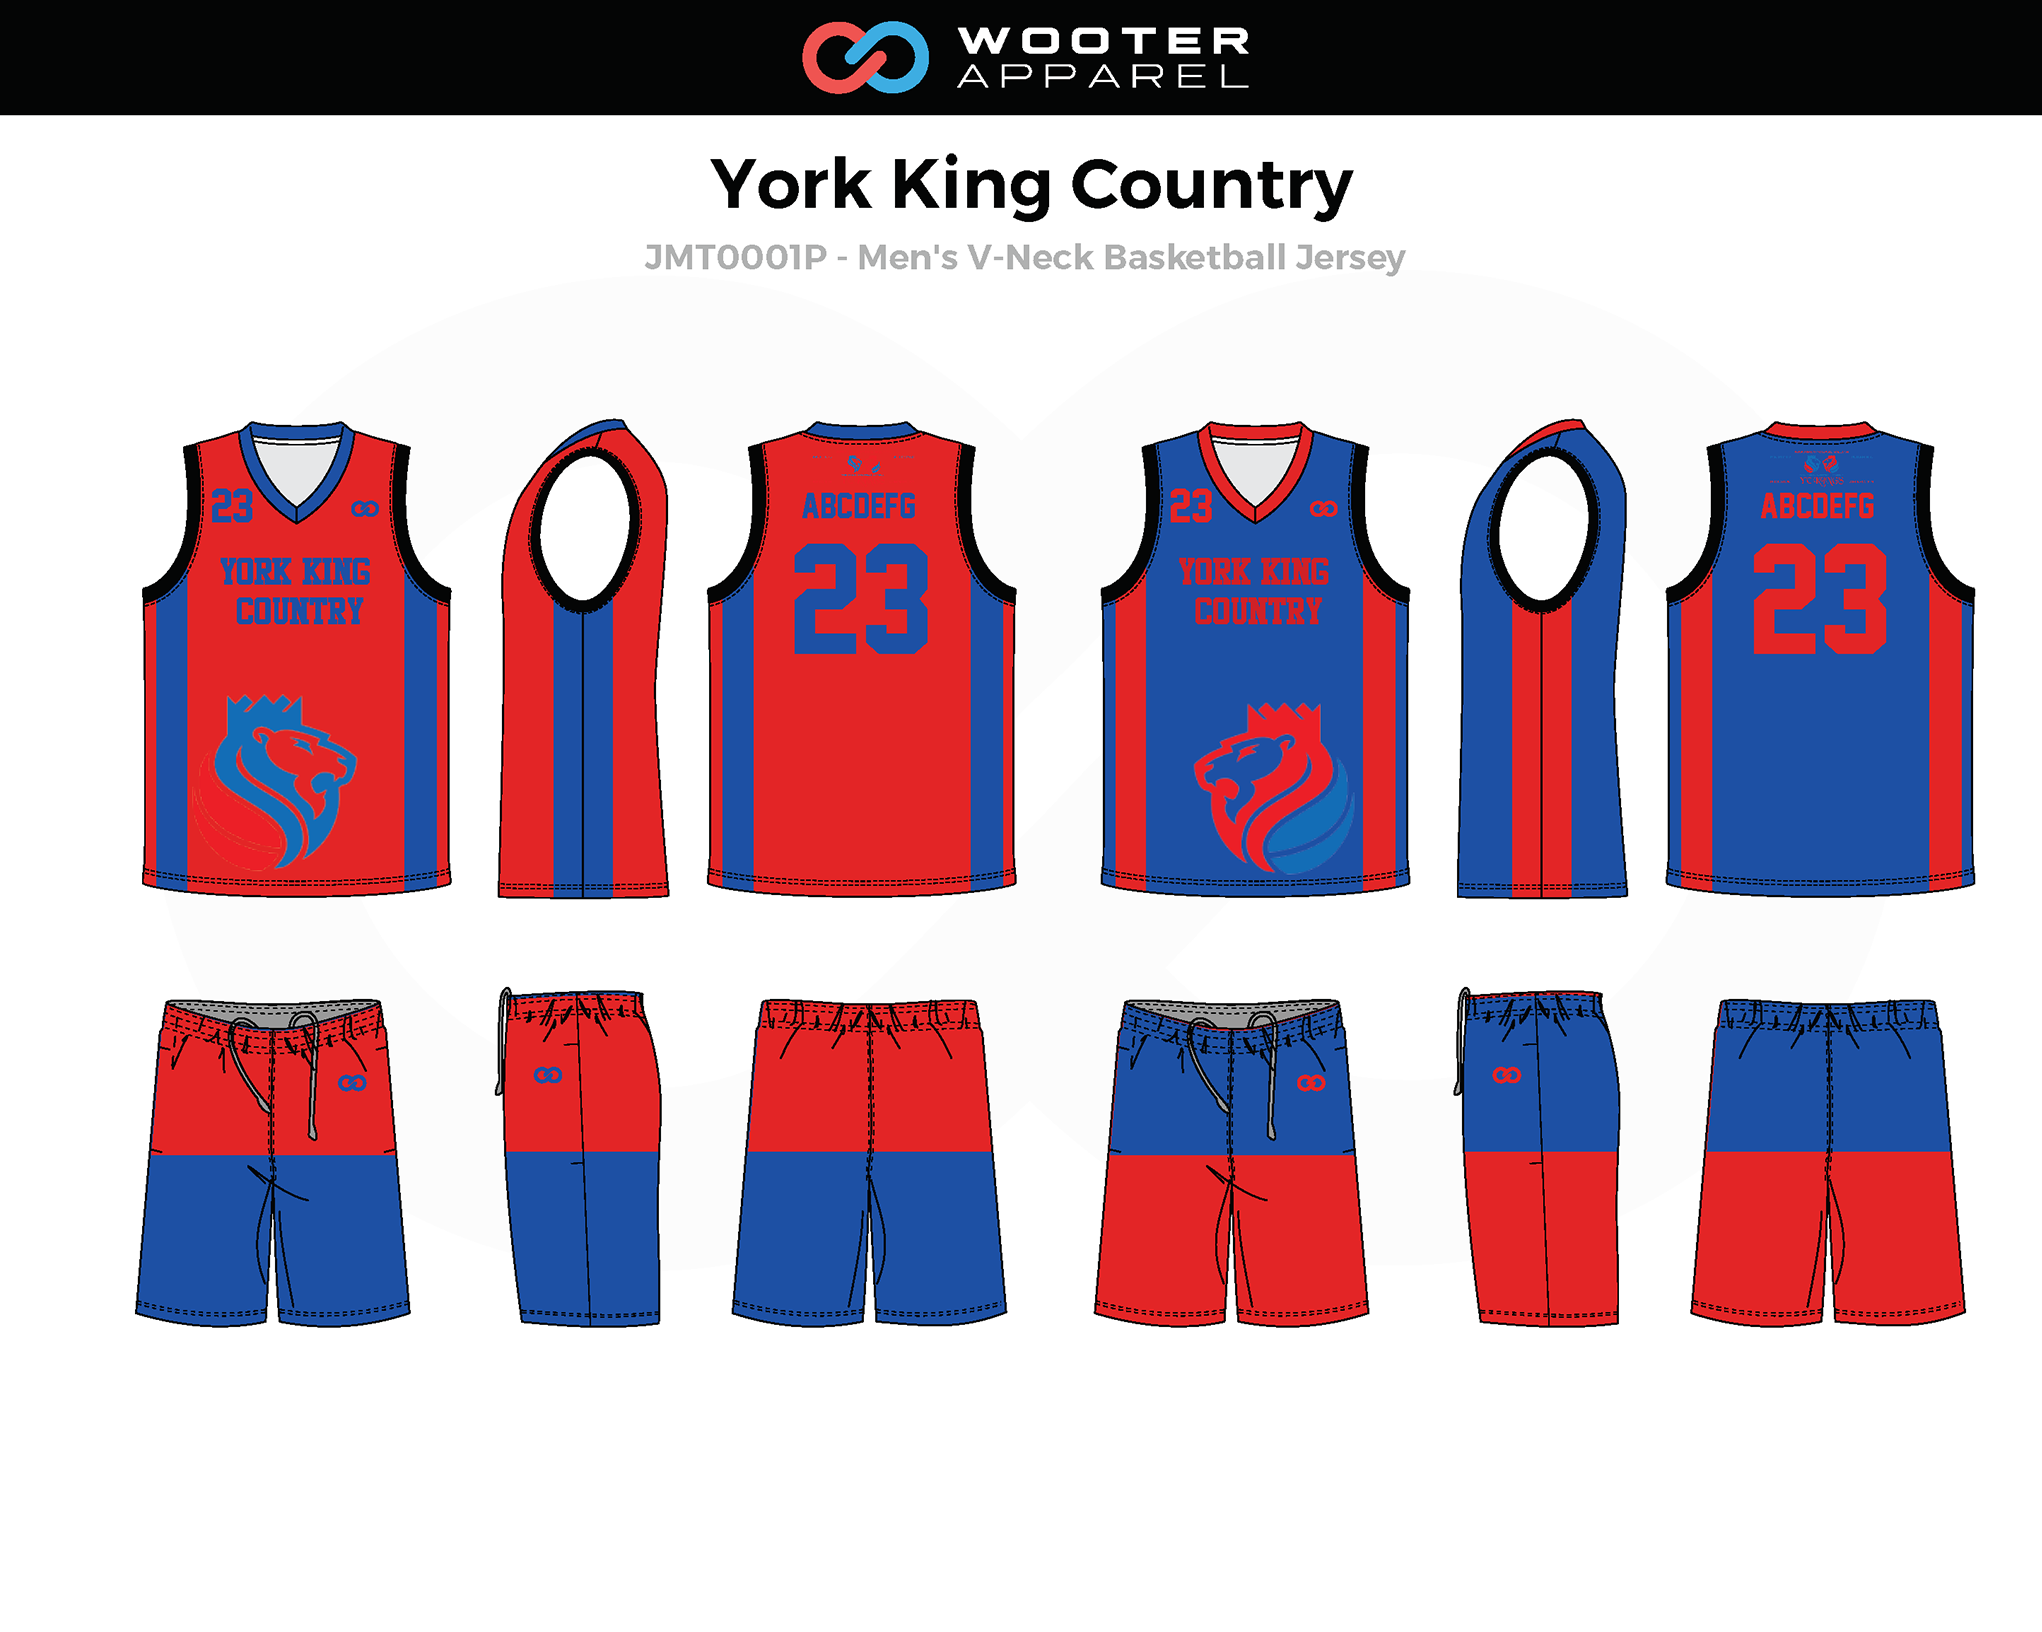 YORK KING COUNTY Blue Red Men's V-Neck Basketball Uniform, Jersey and Shorts